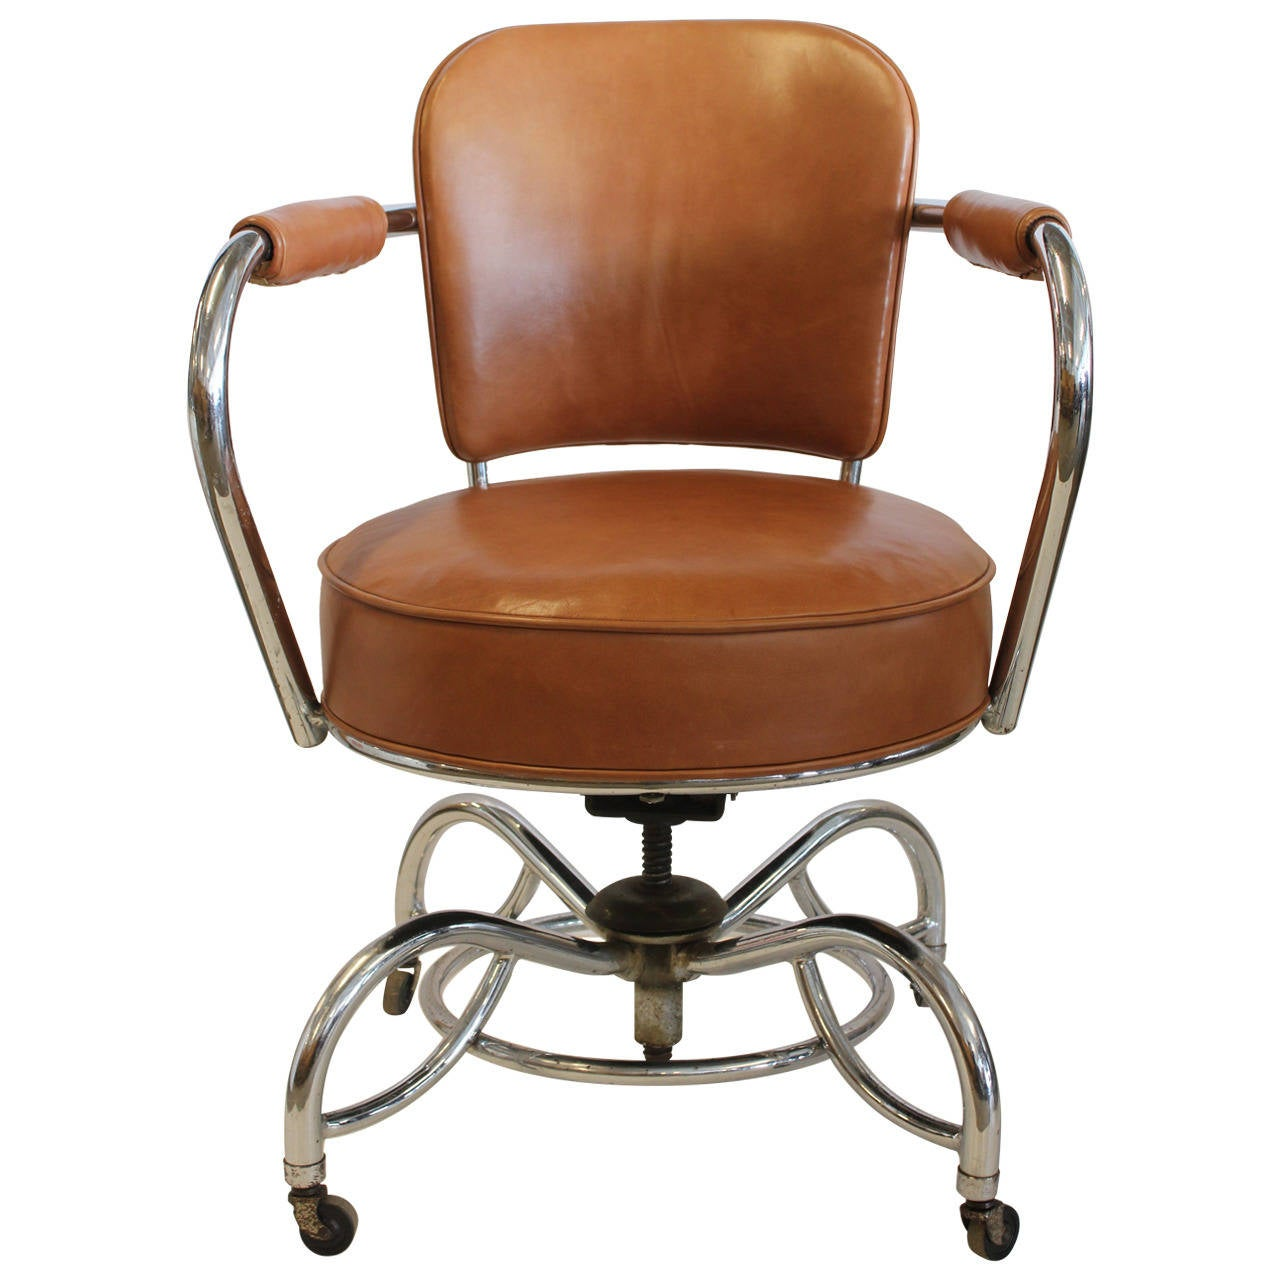 stylish art deco leather and chrome desk chair at 1stdibs